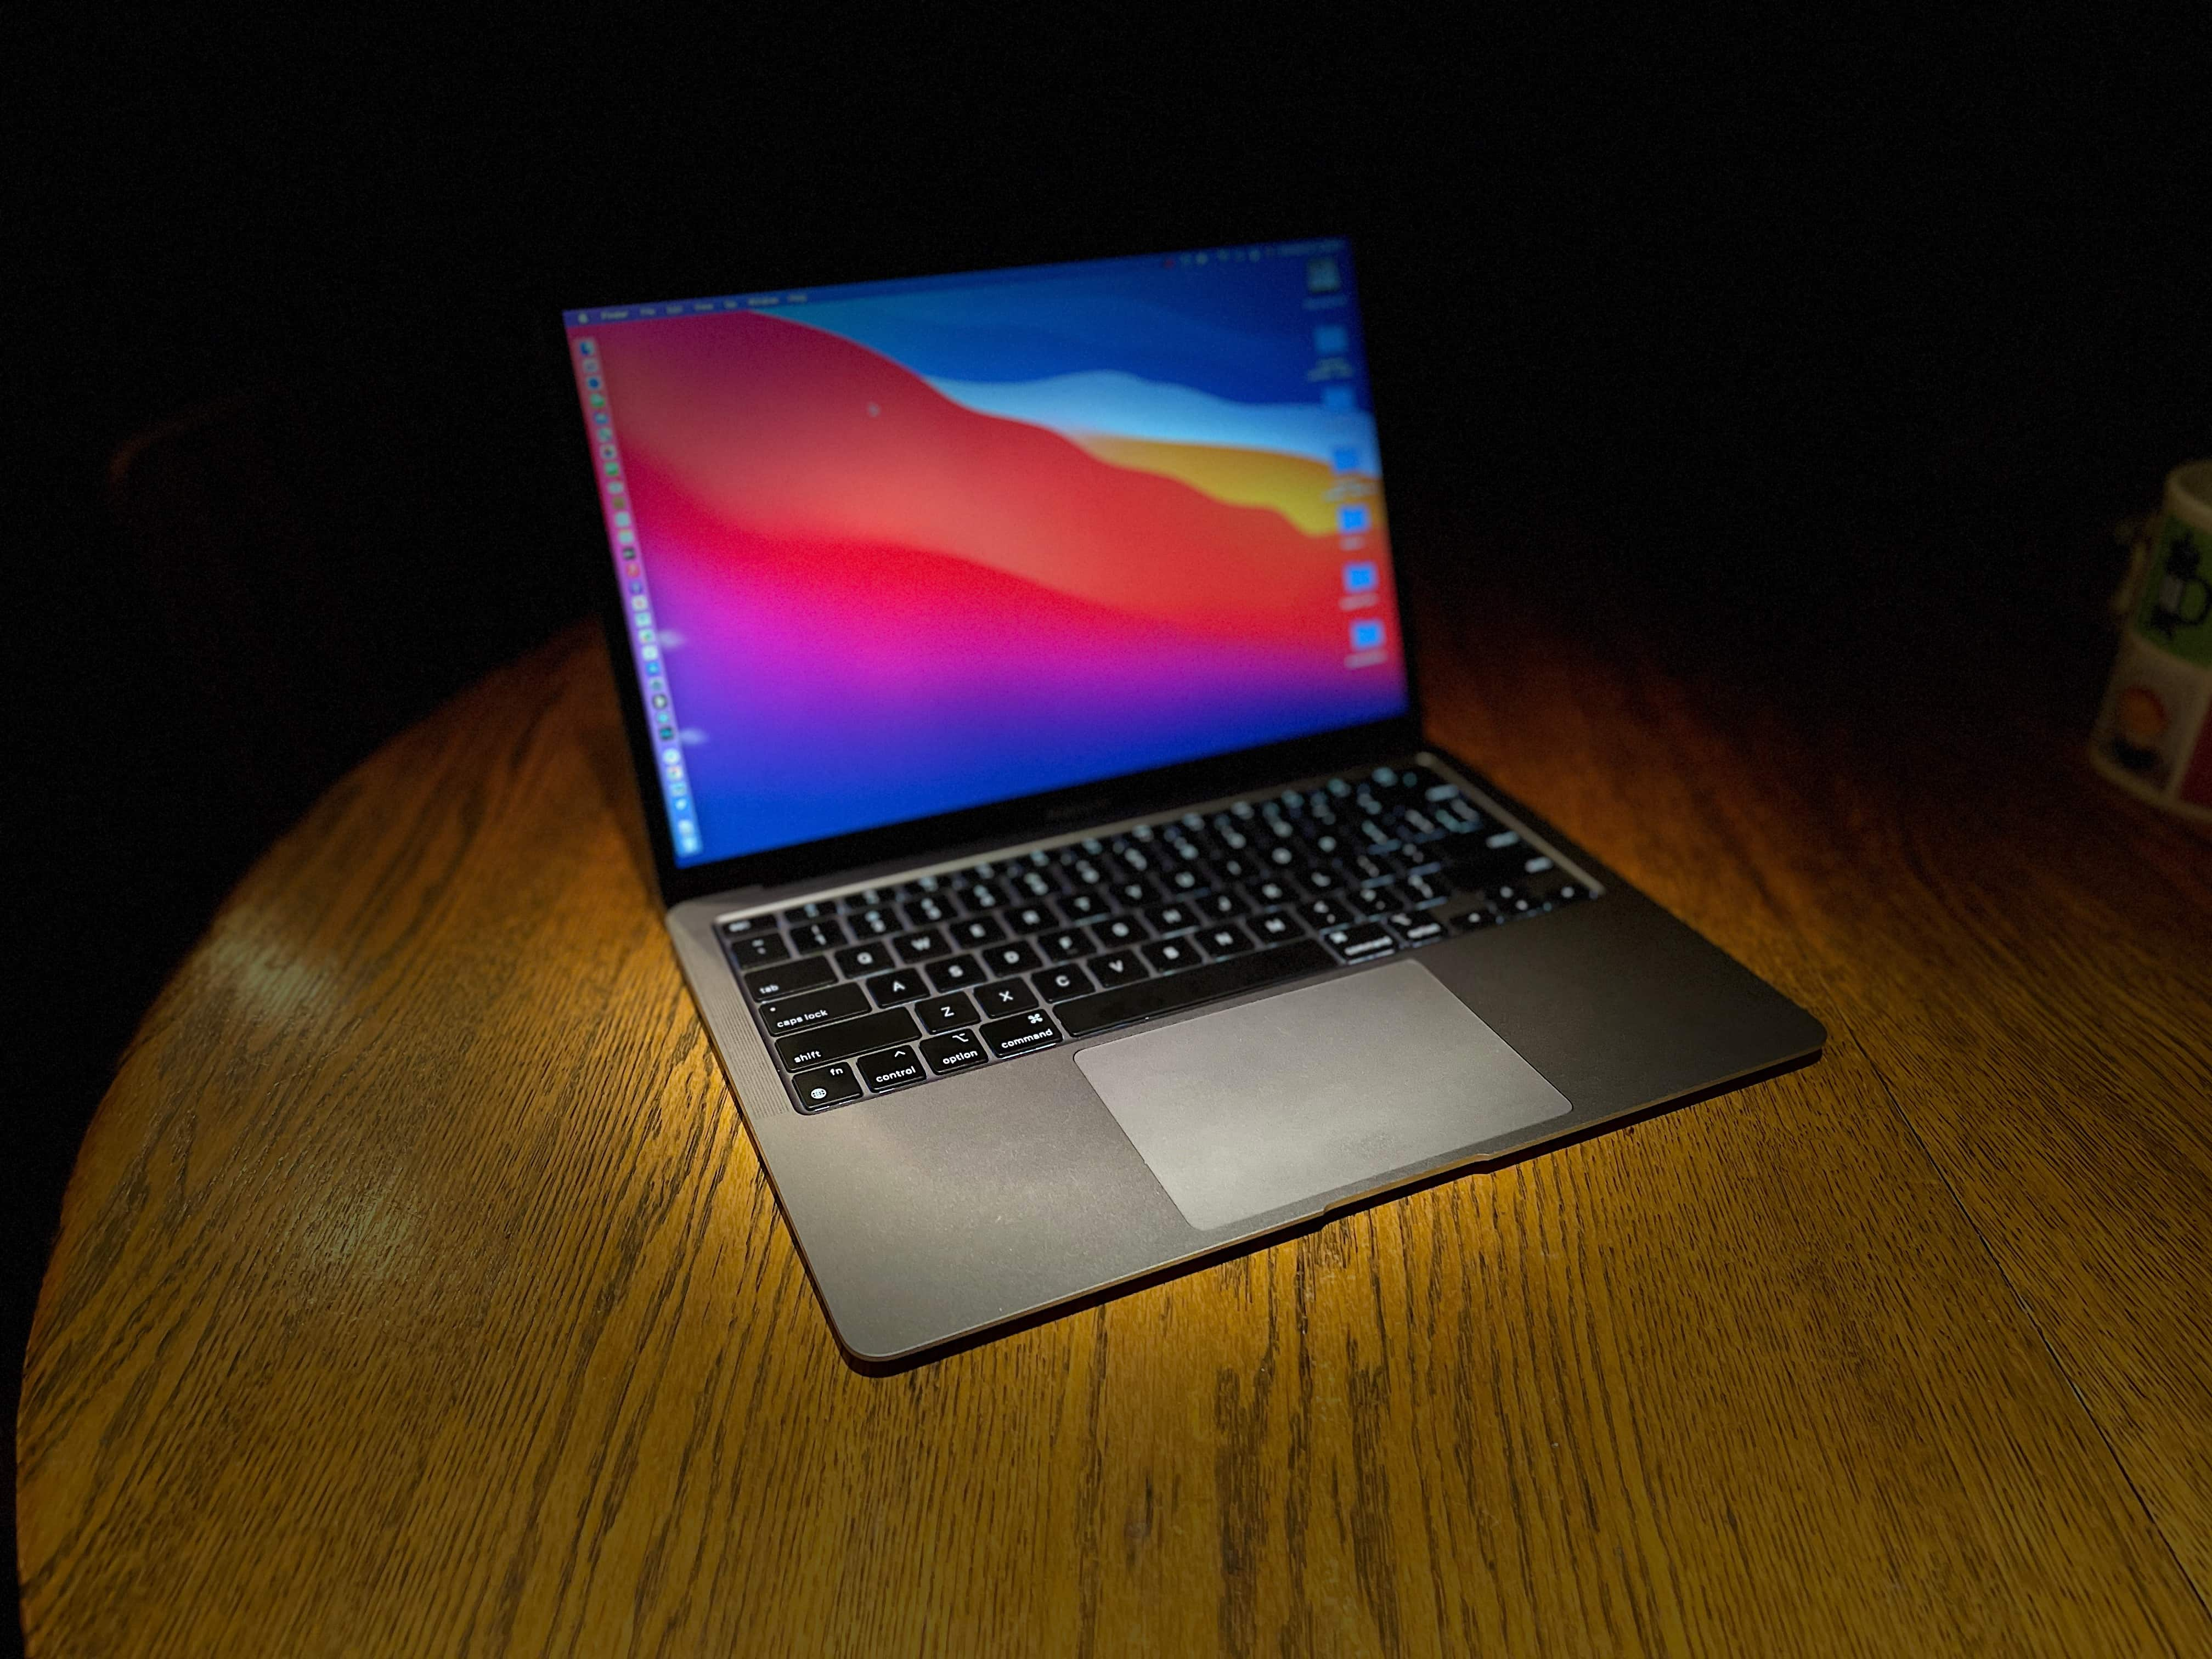 MacBook shipments could jump next year to hit more than 17 million